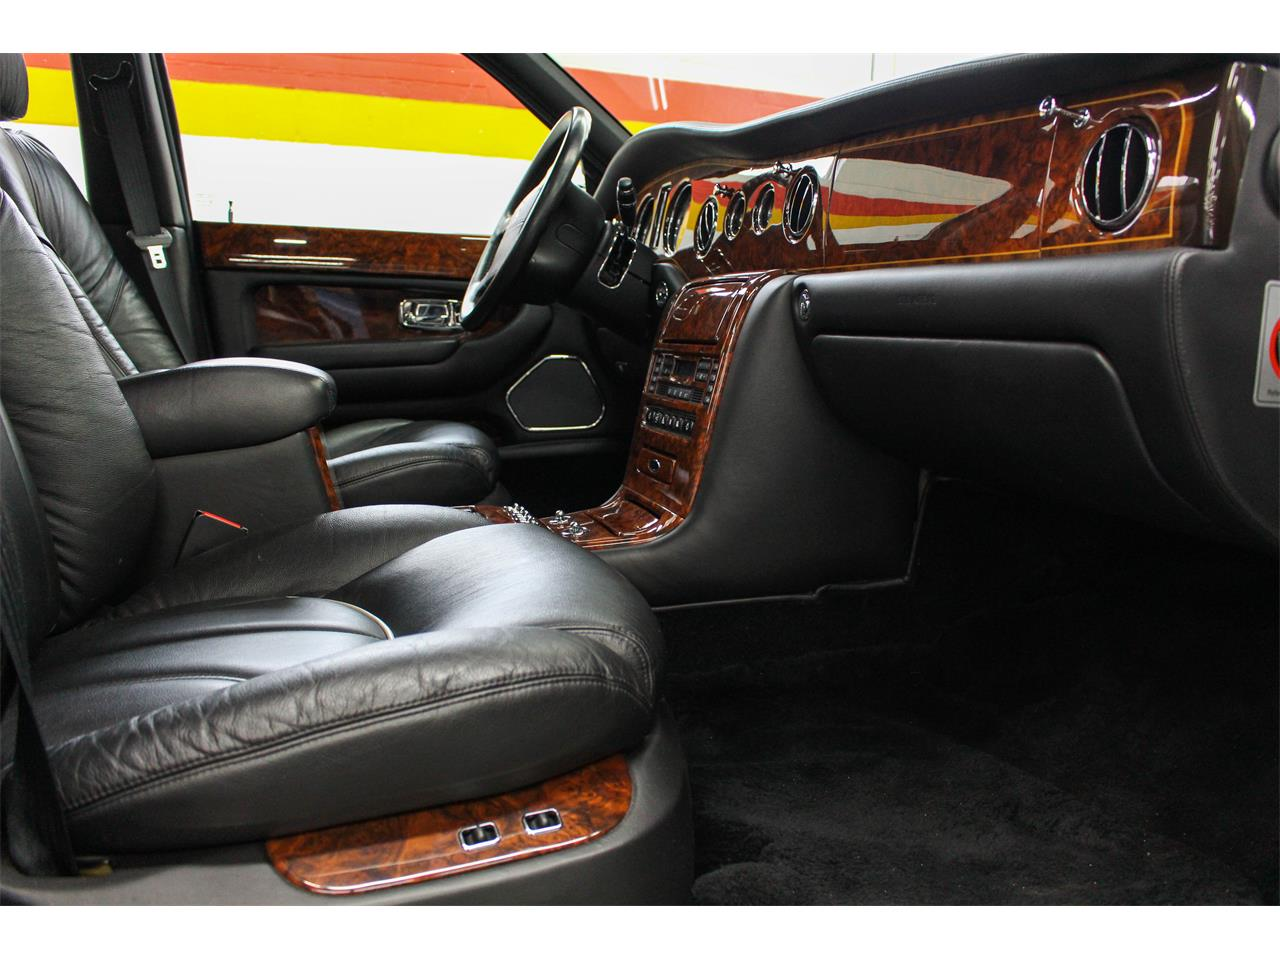 Large Picture of '99 Rolls-Royce Silver Seraph located in Quebec - $59,995.00 Offered by John Scotti Classic Cars - M1YP